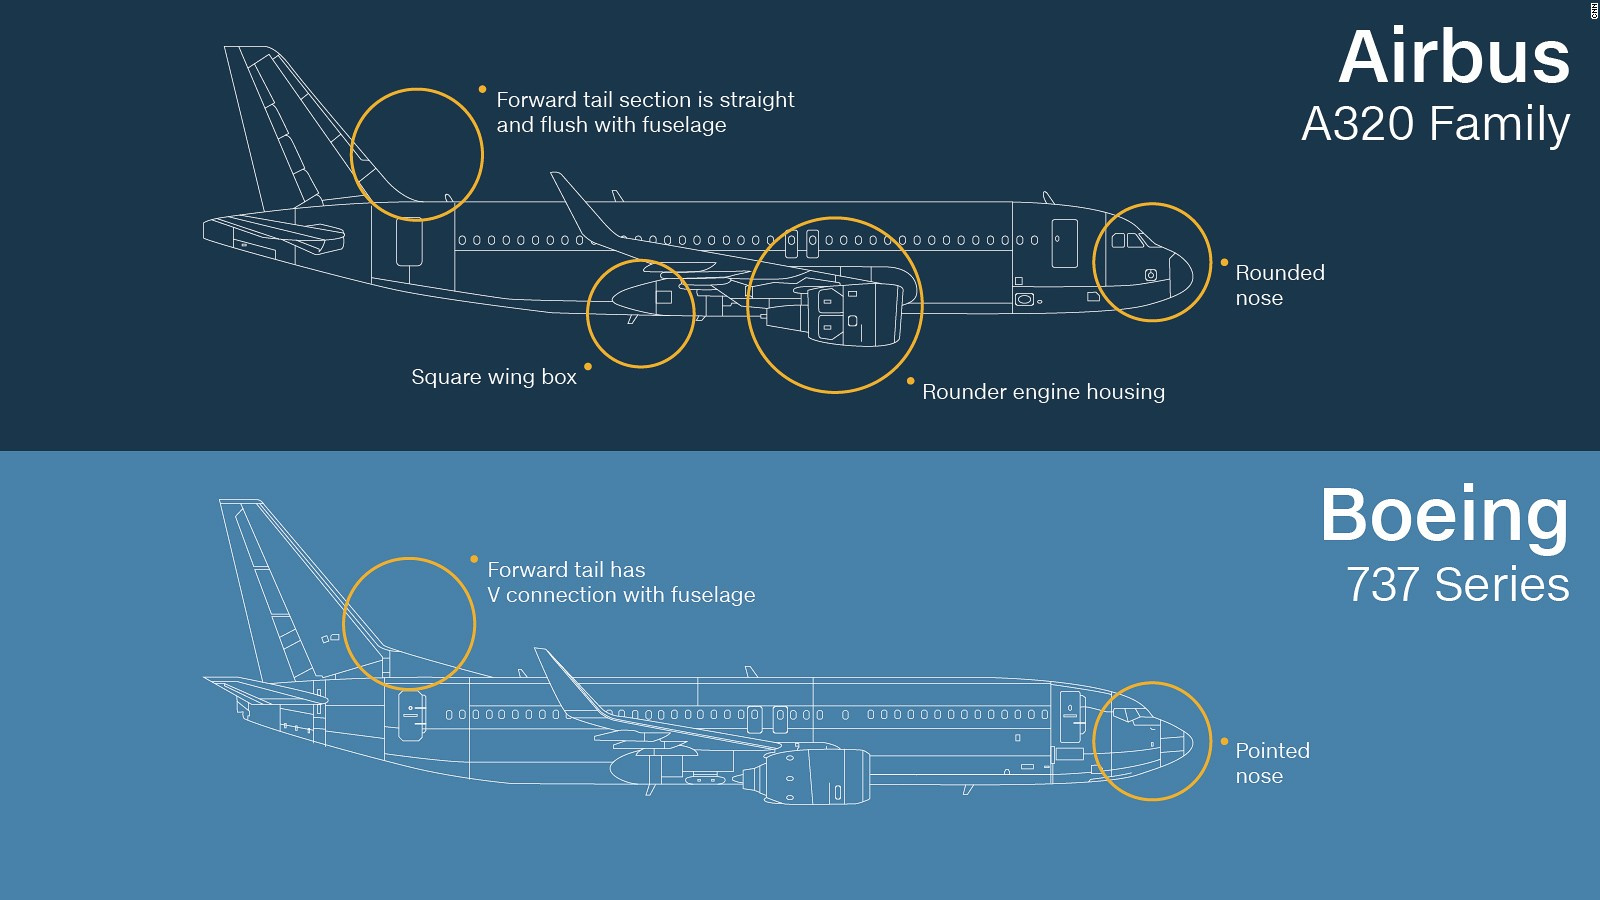 Boeing 757 Fuselage Station Diagram - Wiring Diagram For Light Switch •